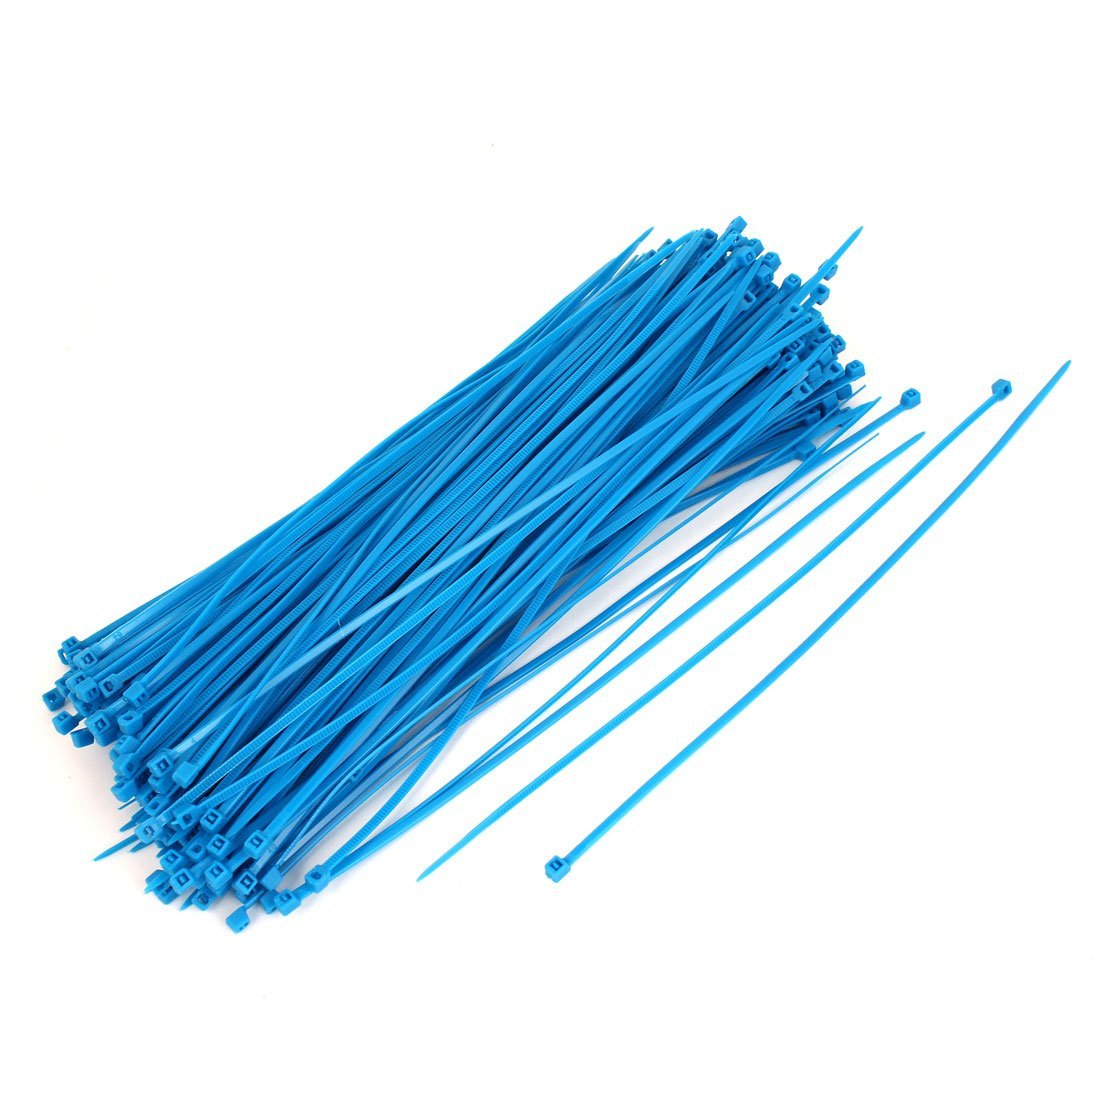 Uxcell Nylon Self Locking Electric Wire Cable Zip Ties 4x250mm 250pcs Blue